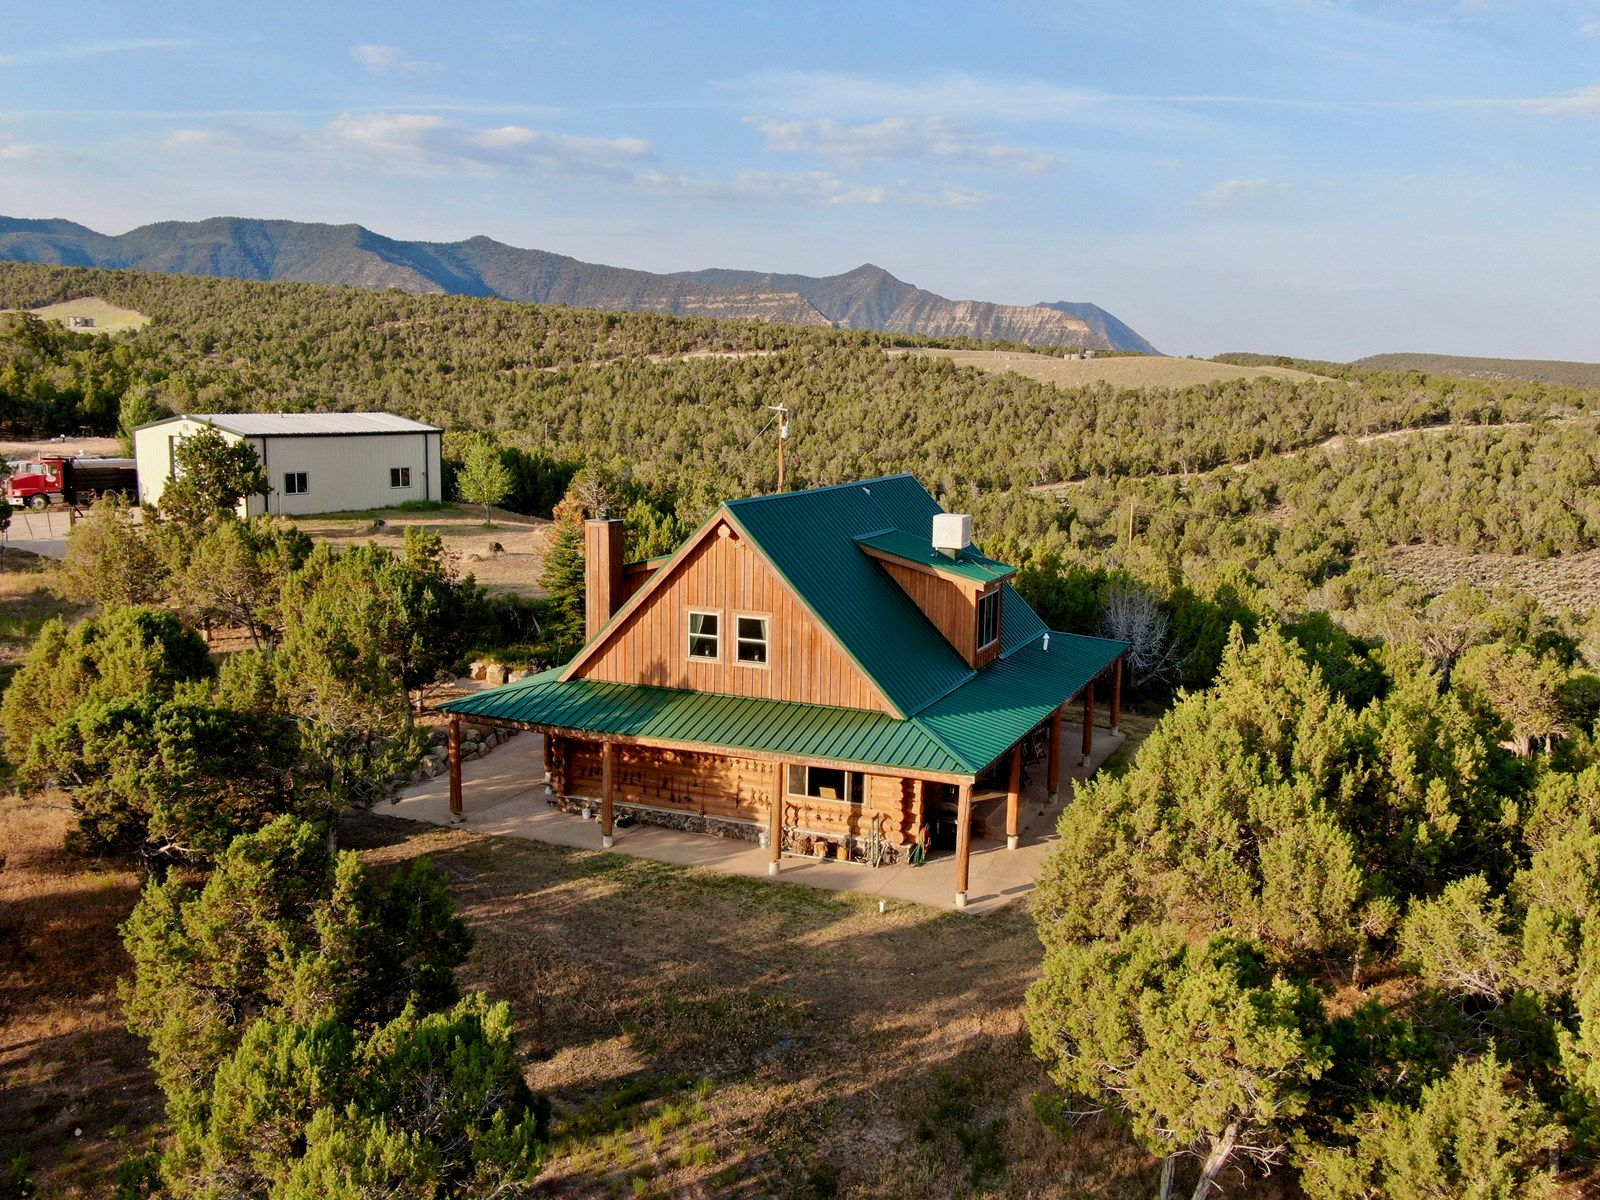 Colorado Custom Log Home with Shop on 40 acres For Sale